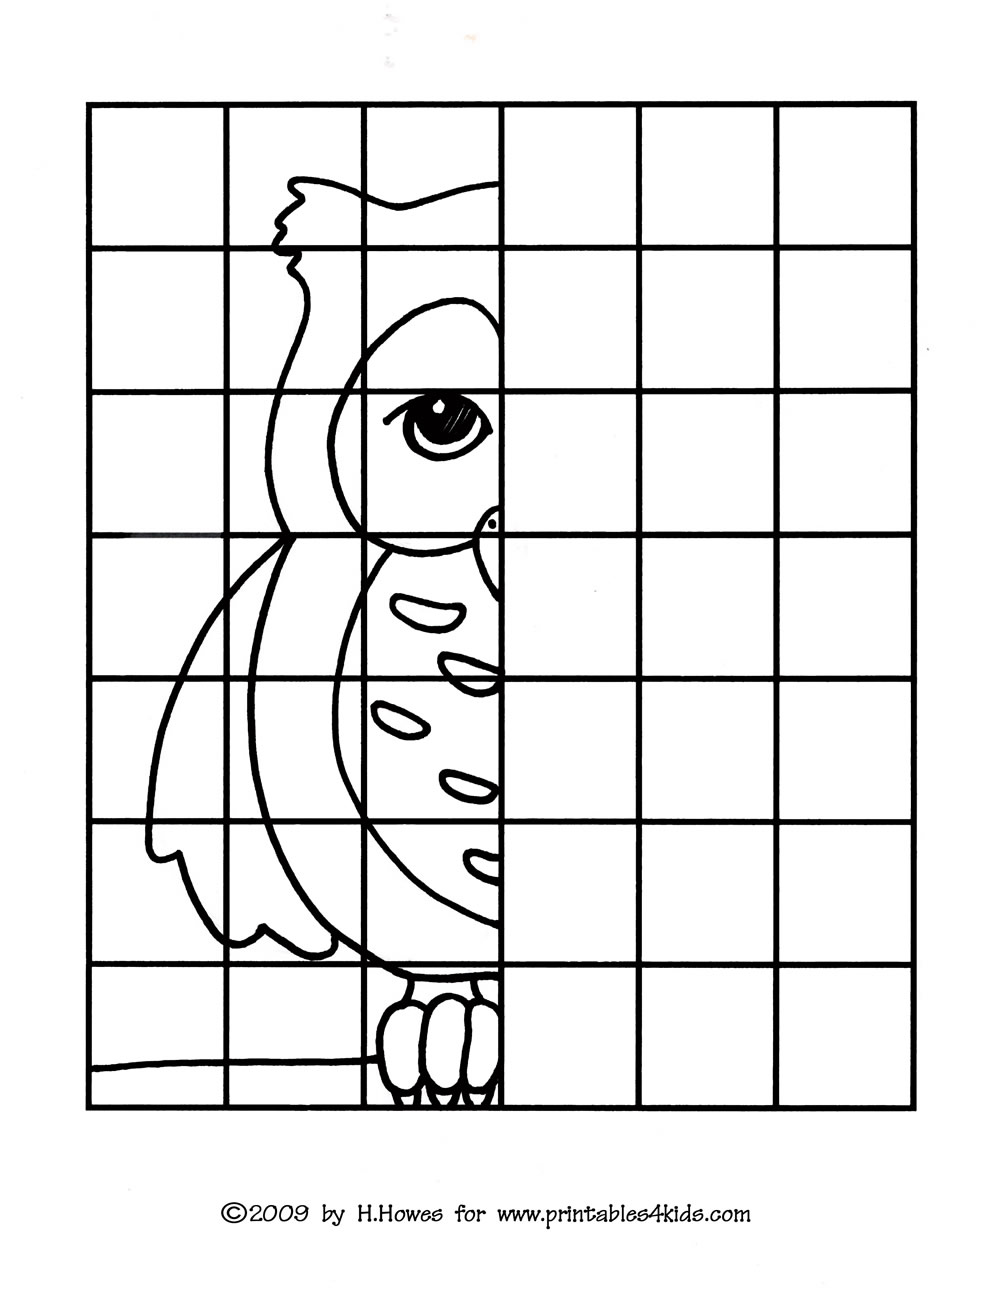 s line of symmetry coloring pages - photo #19